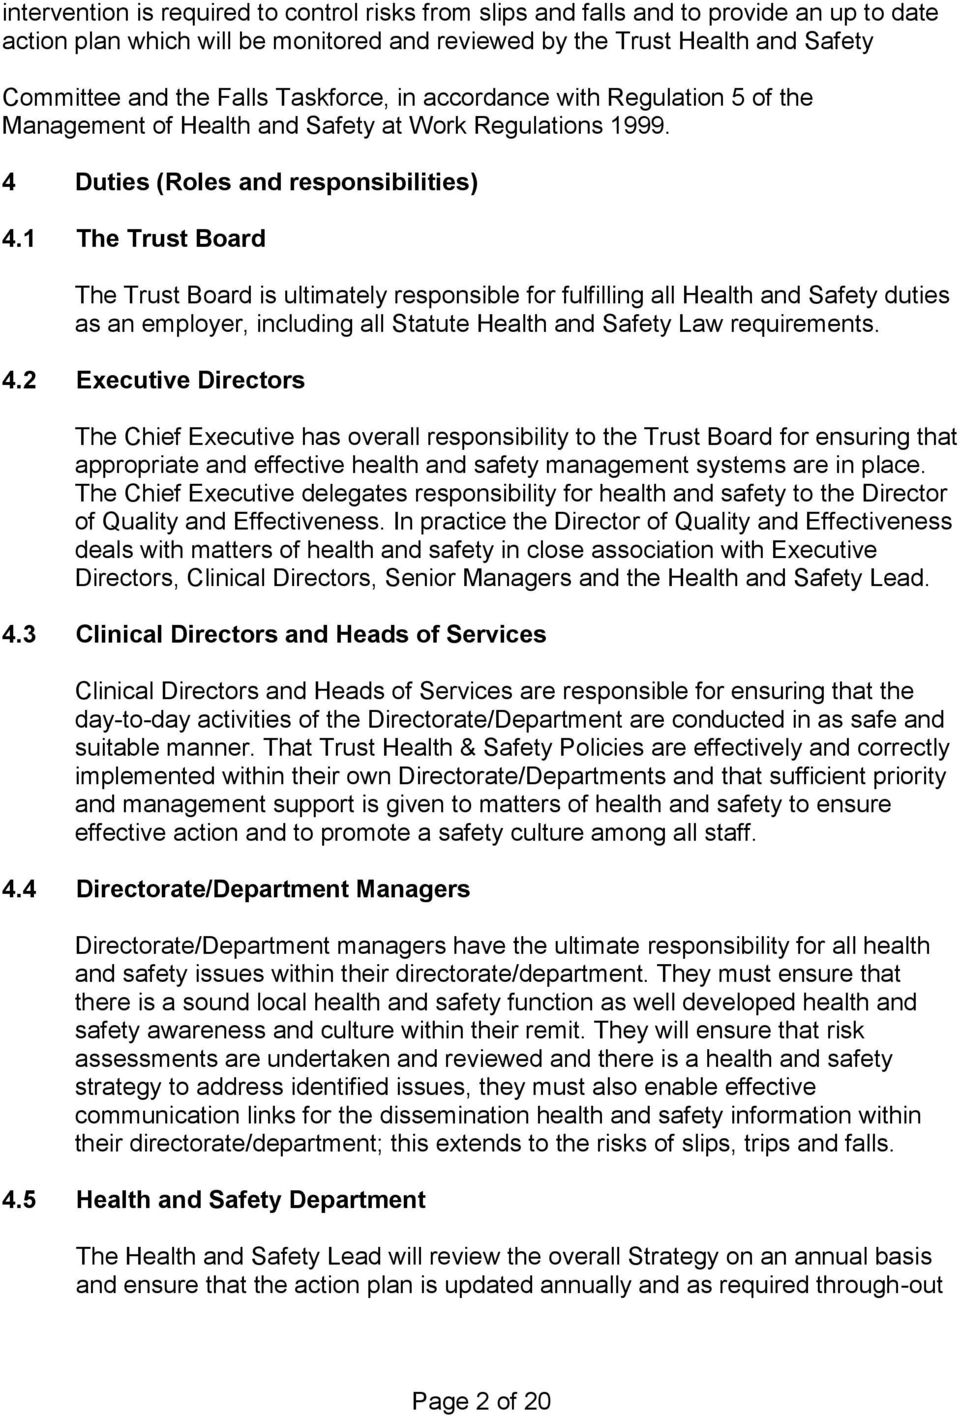 1 The Trust Board The Trust Board is ultimately responsible for fulfilling all Health and Safety duties as an employer, including all Statute Health and Safety Law requirements. 4.